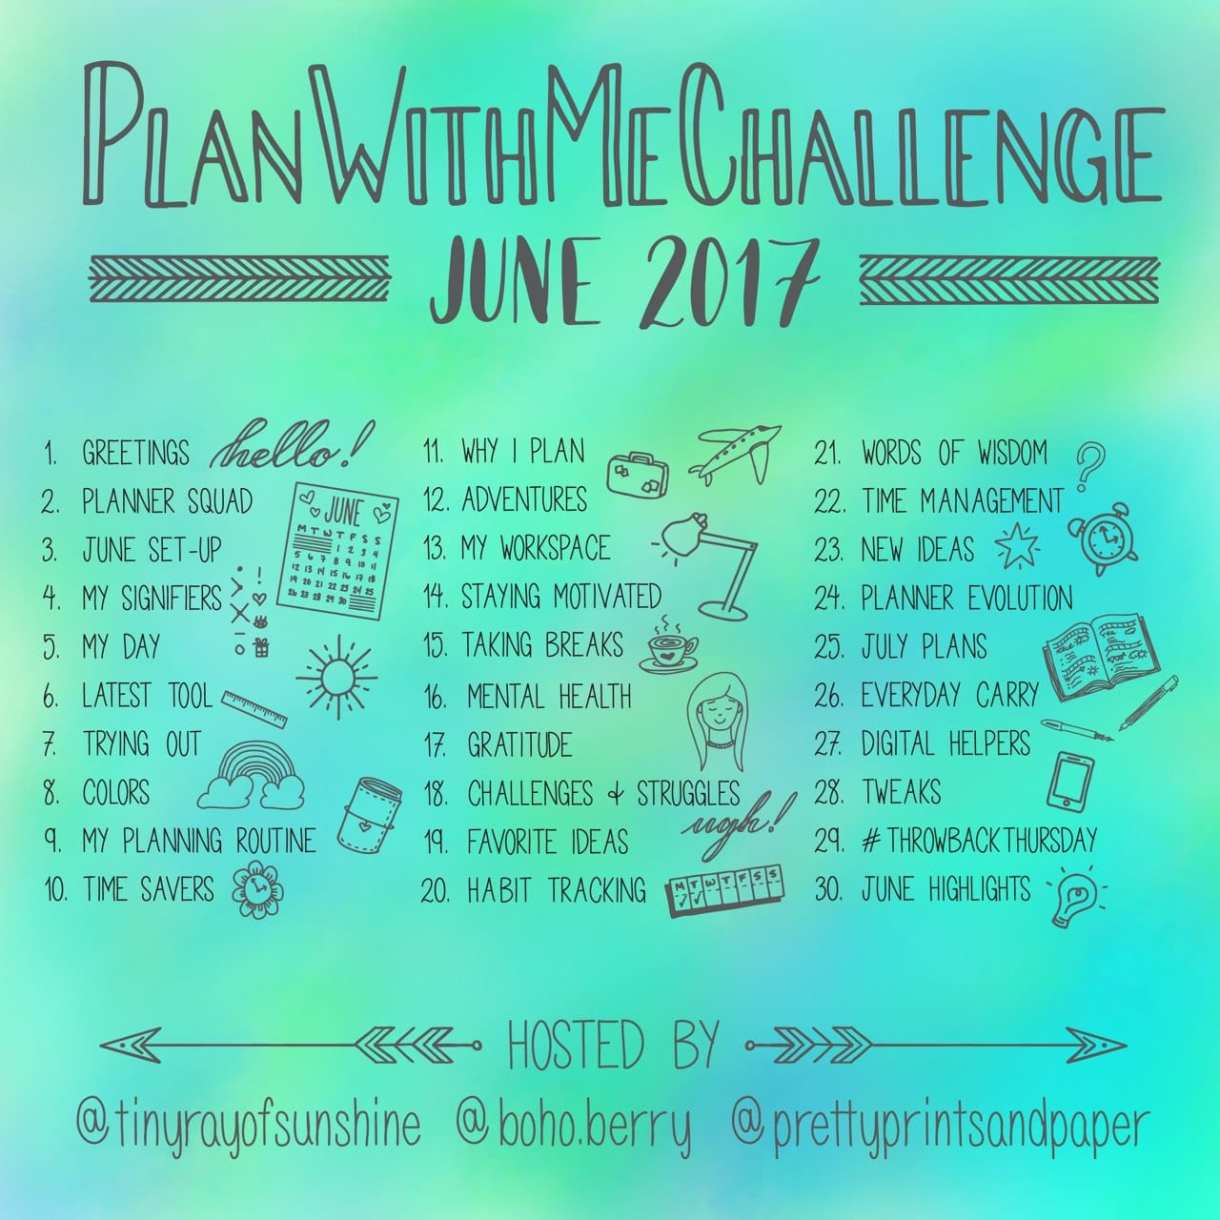 Join @prettyprintsandpaper, @tinyrayofsunshine, and @boho.berry for this month's PlanWithMeChallenge!